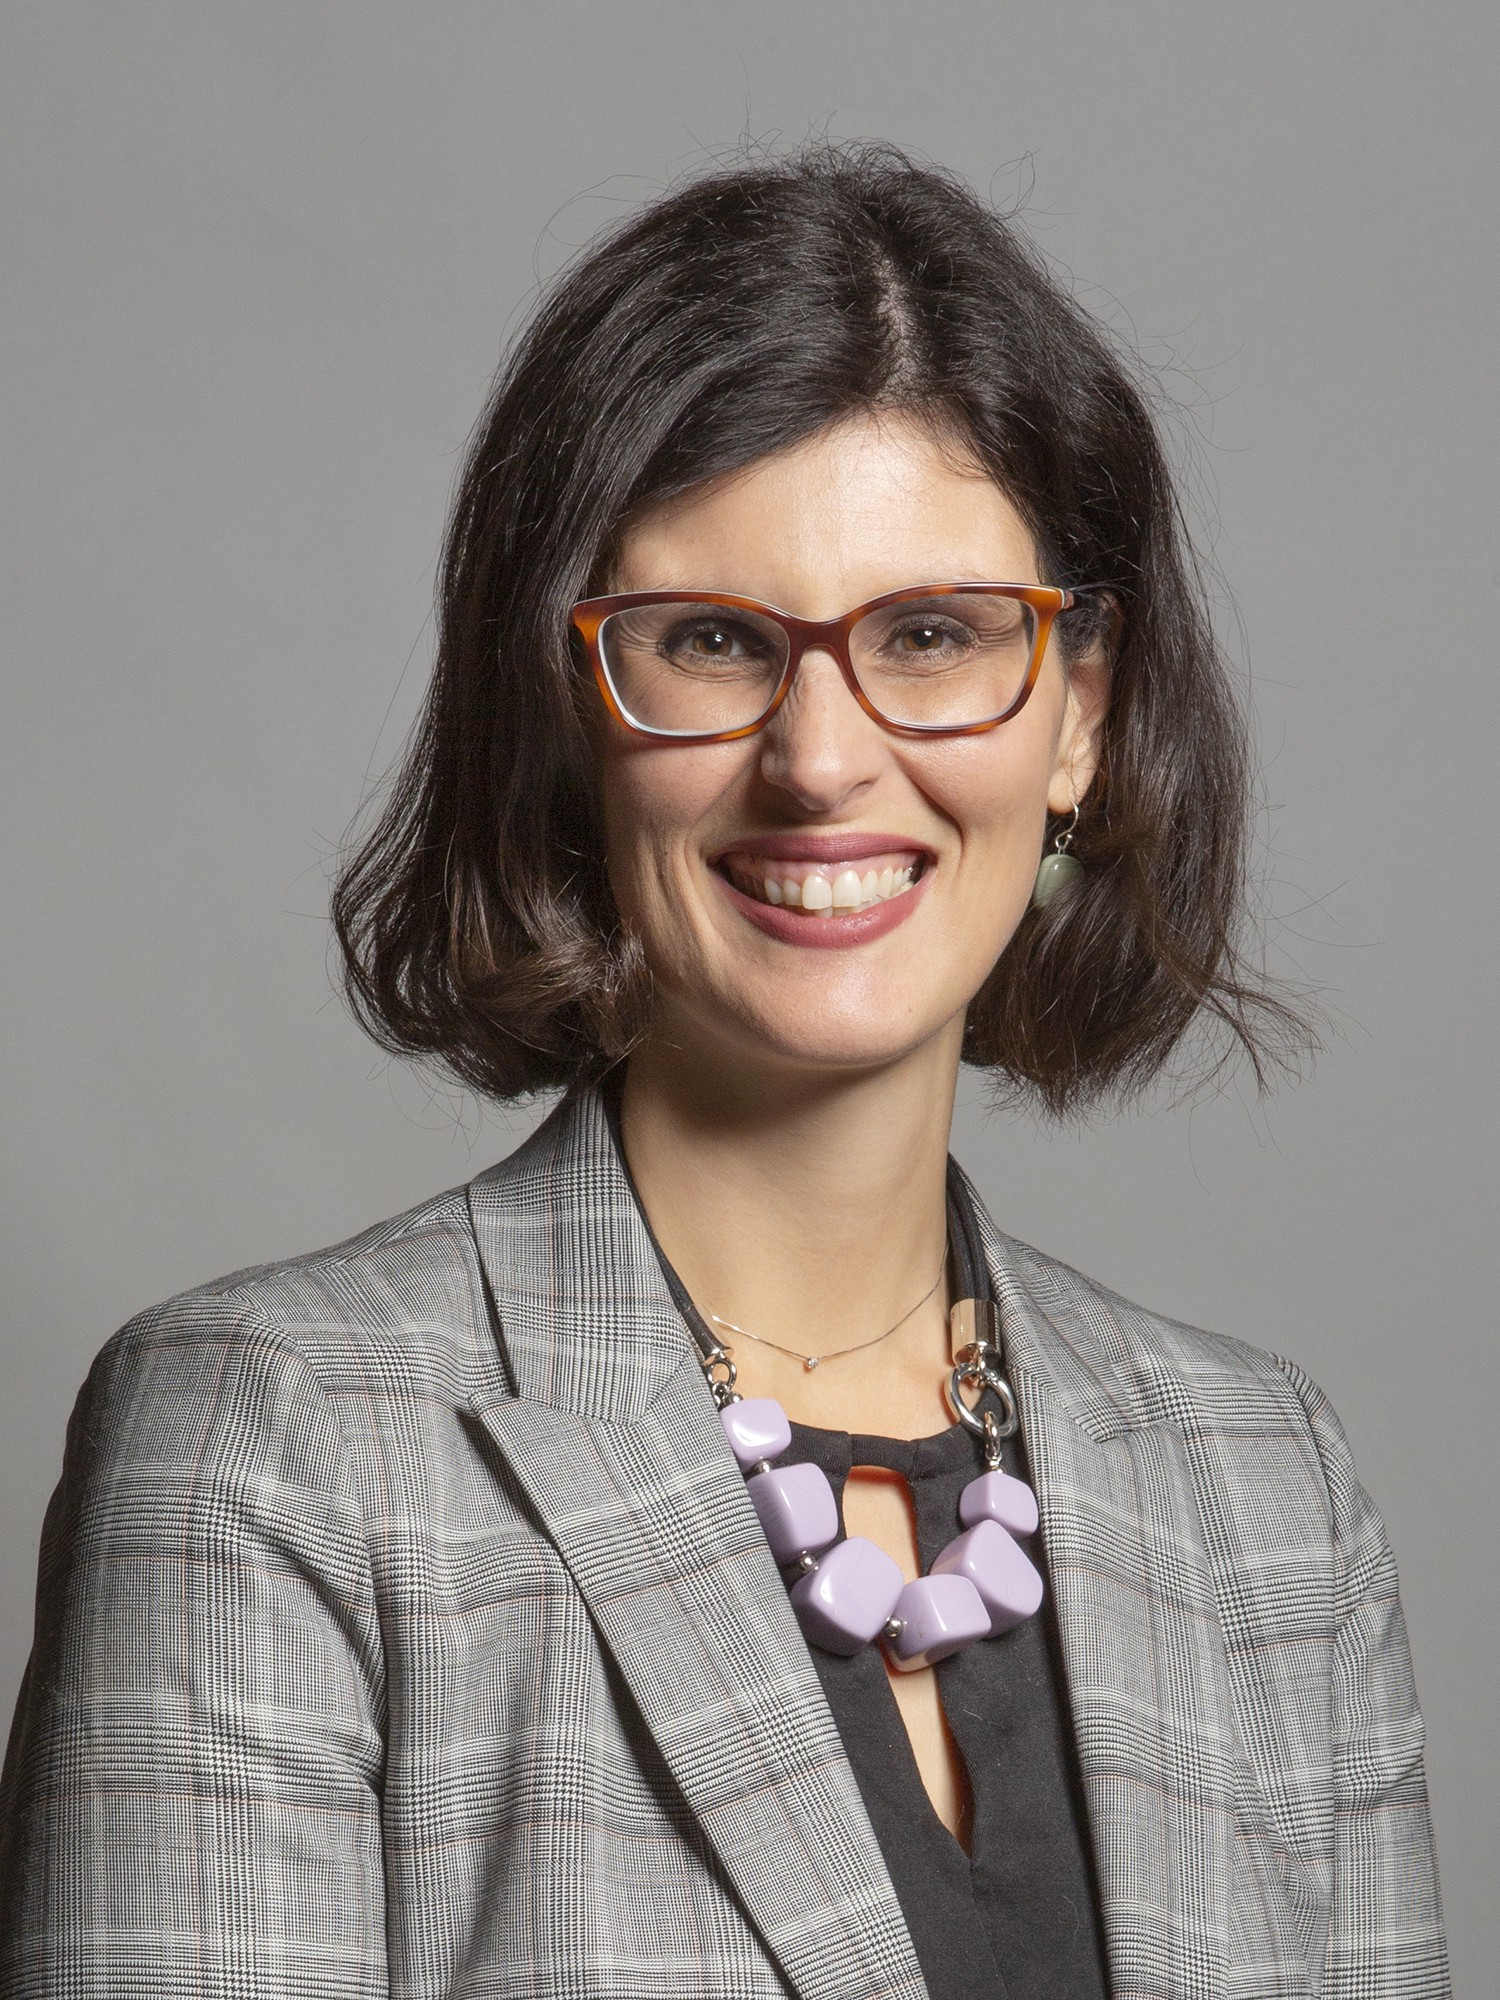 A photo of Layla Moran MP wearing a business suit and looking directly at the camera